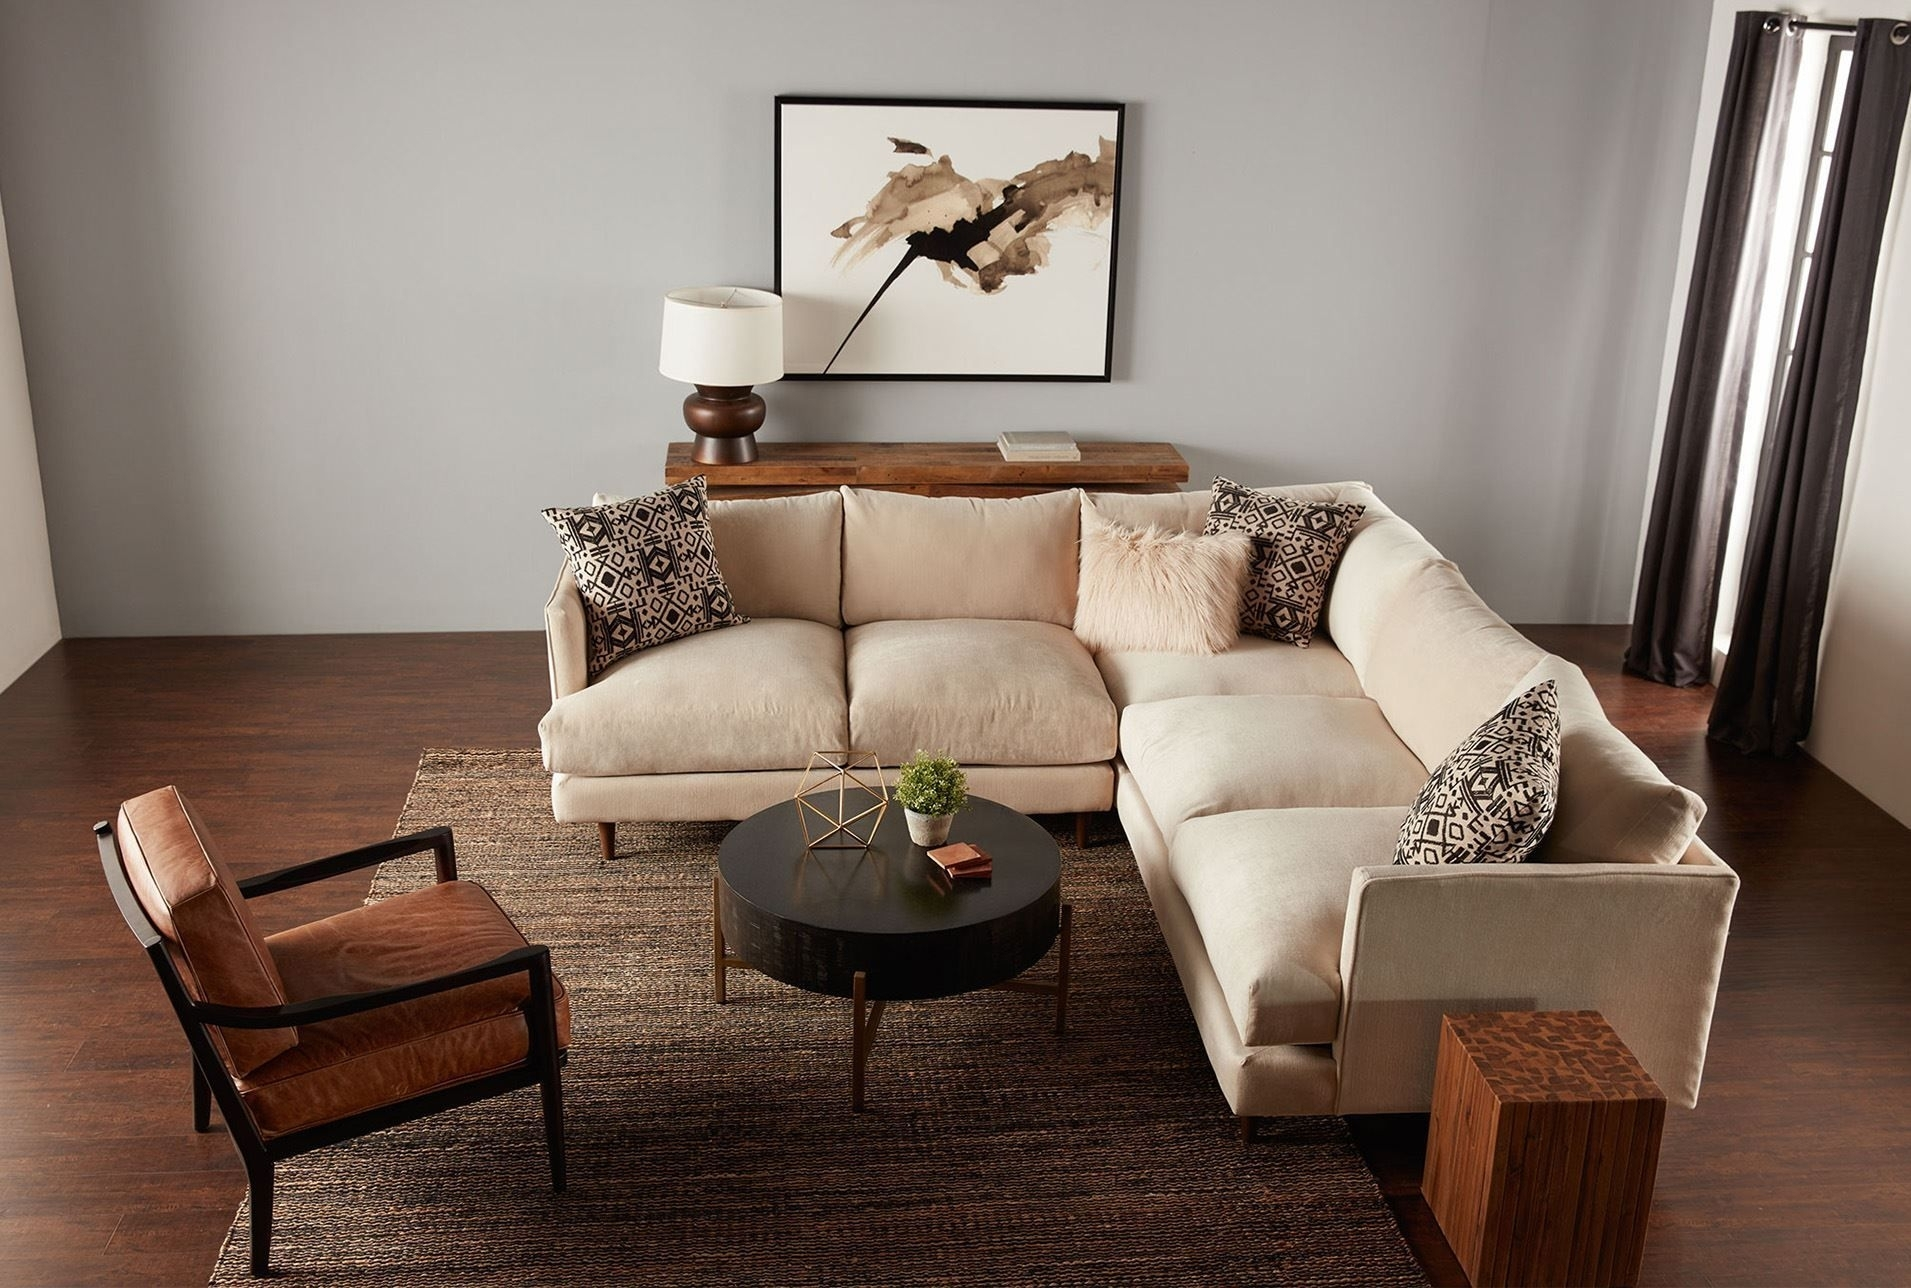 Adeline 3 Piece Sectional   Living Room Redesign   Pinterest With Regard To Adeline 3 Piece Sectionals (Image 3 of 25)